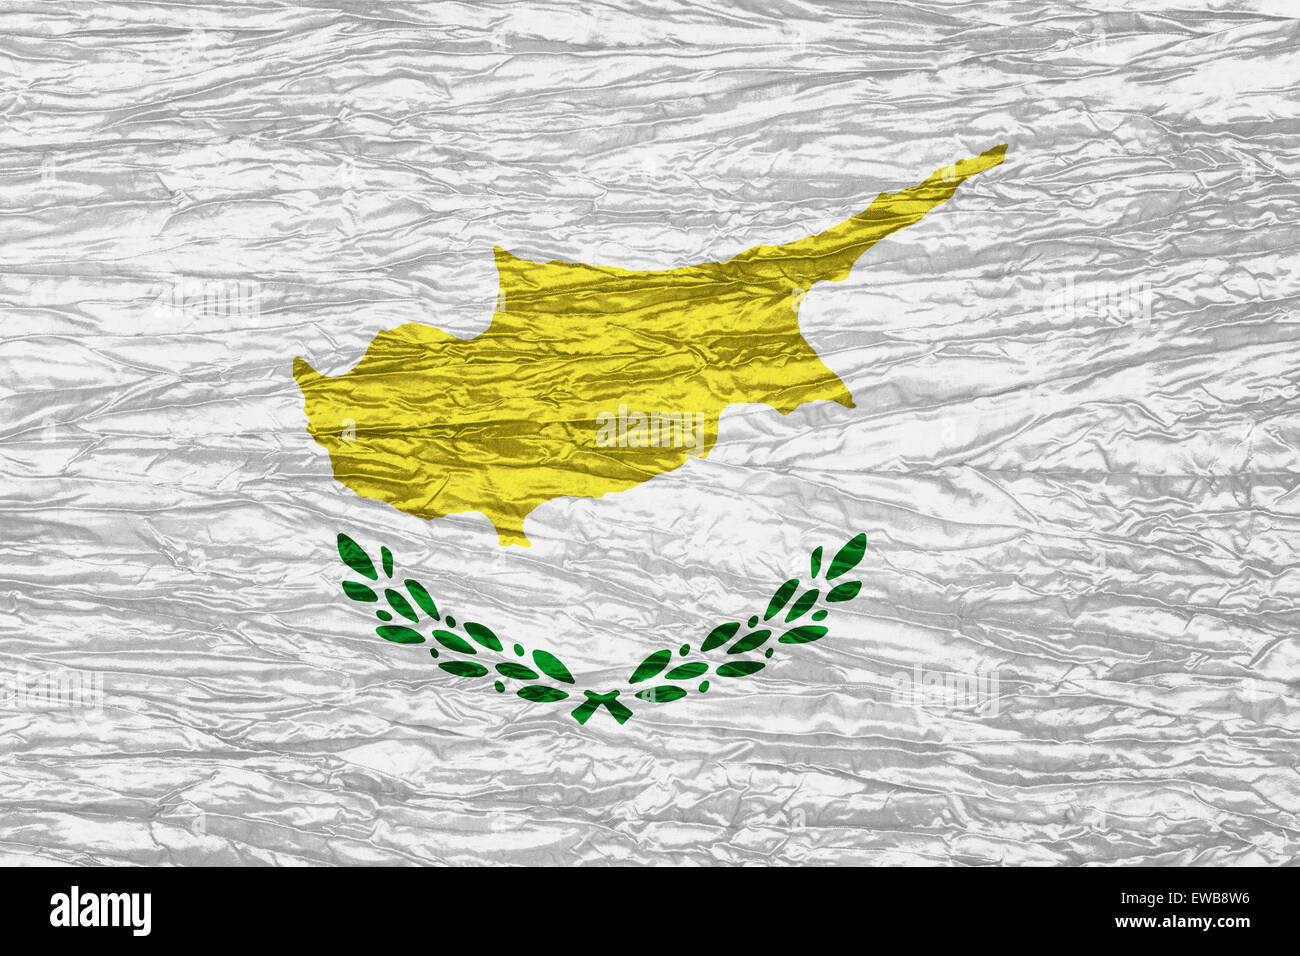 Cyprus flag or Cypriot banner on canvas texture - Stock Image